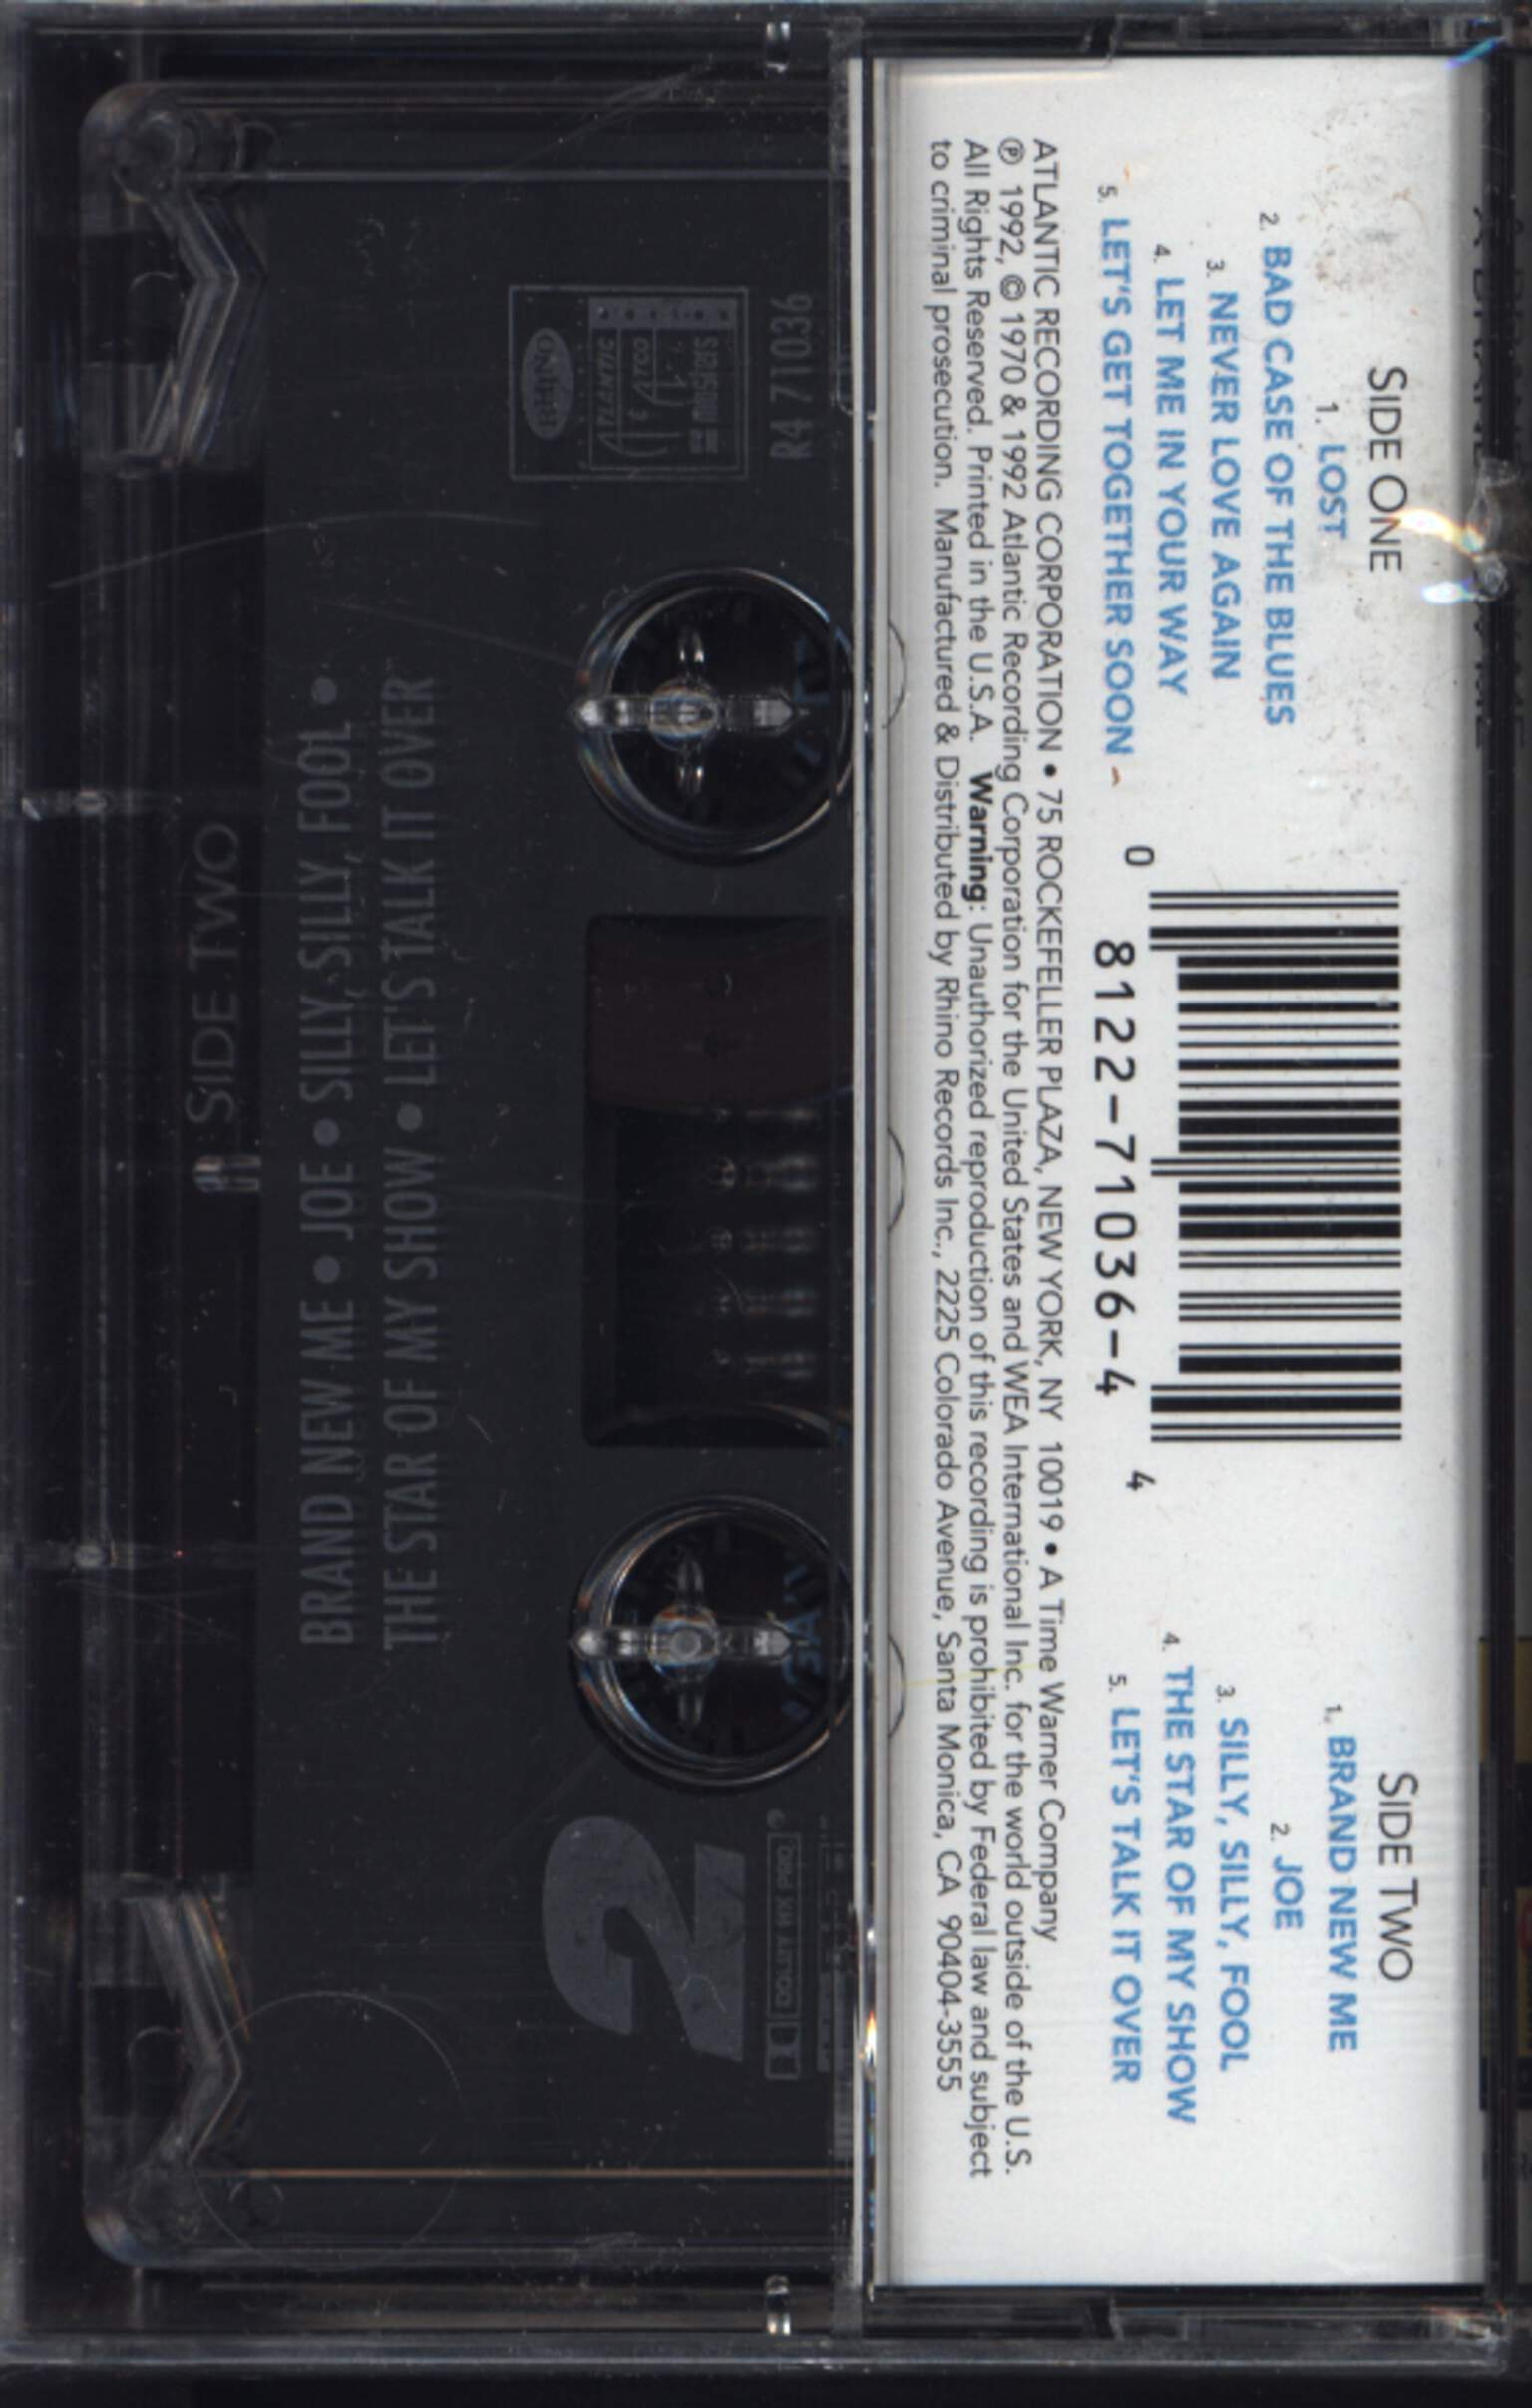 Dusty Springfield: A Brand New Me, Compact Cassette